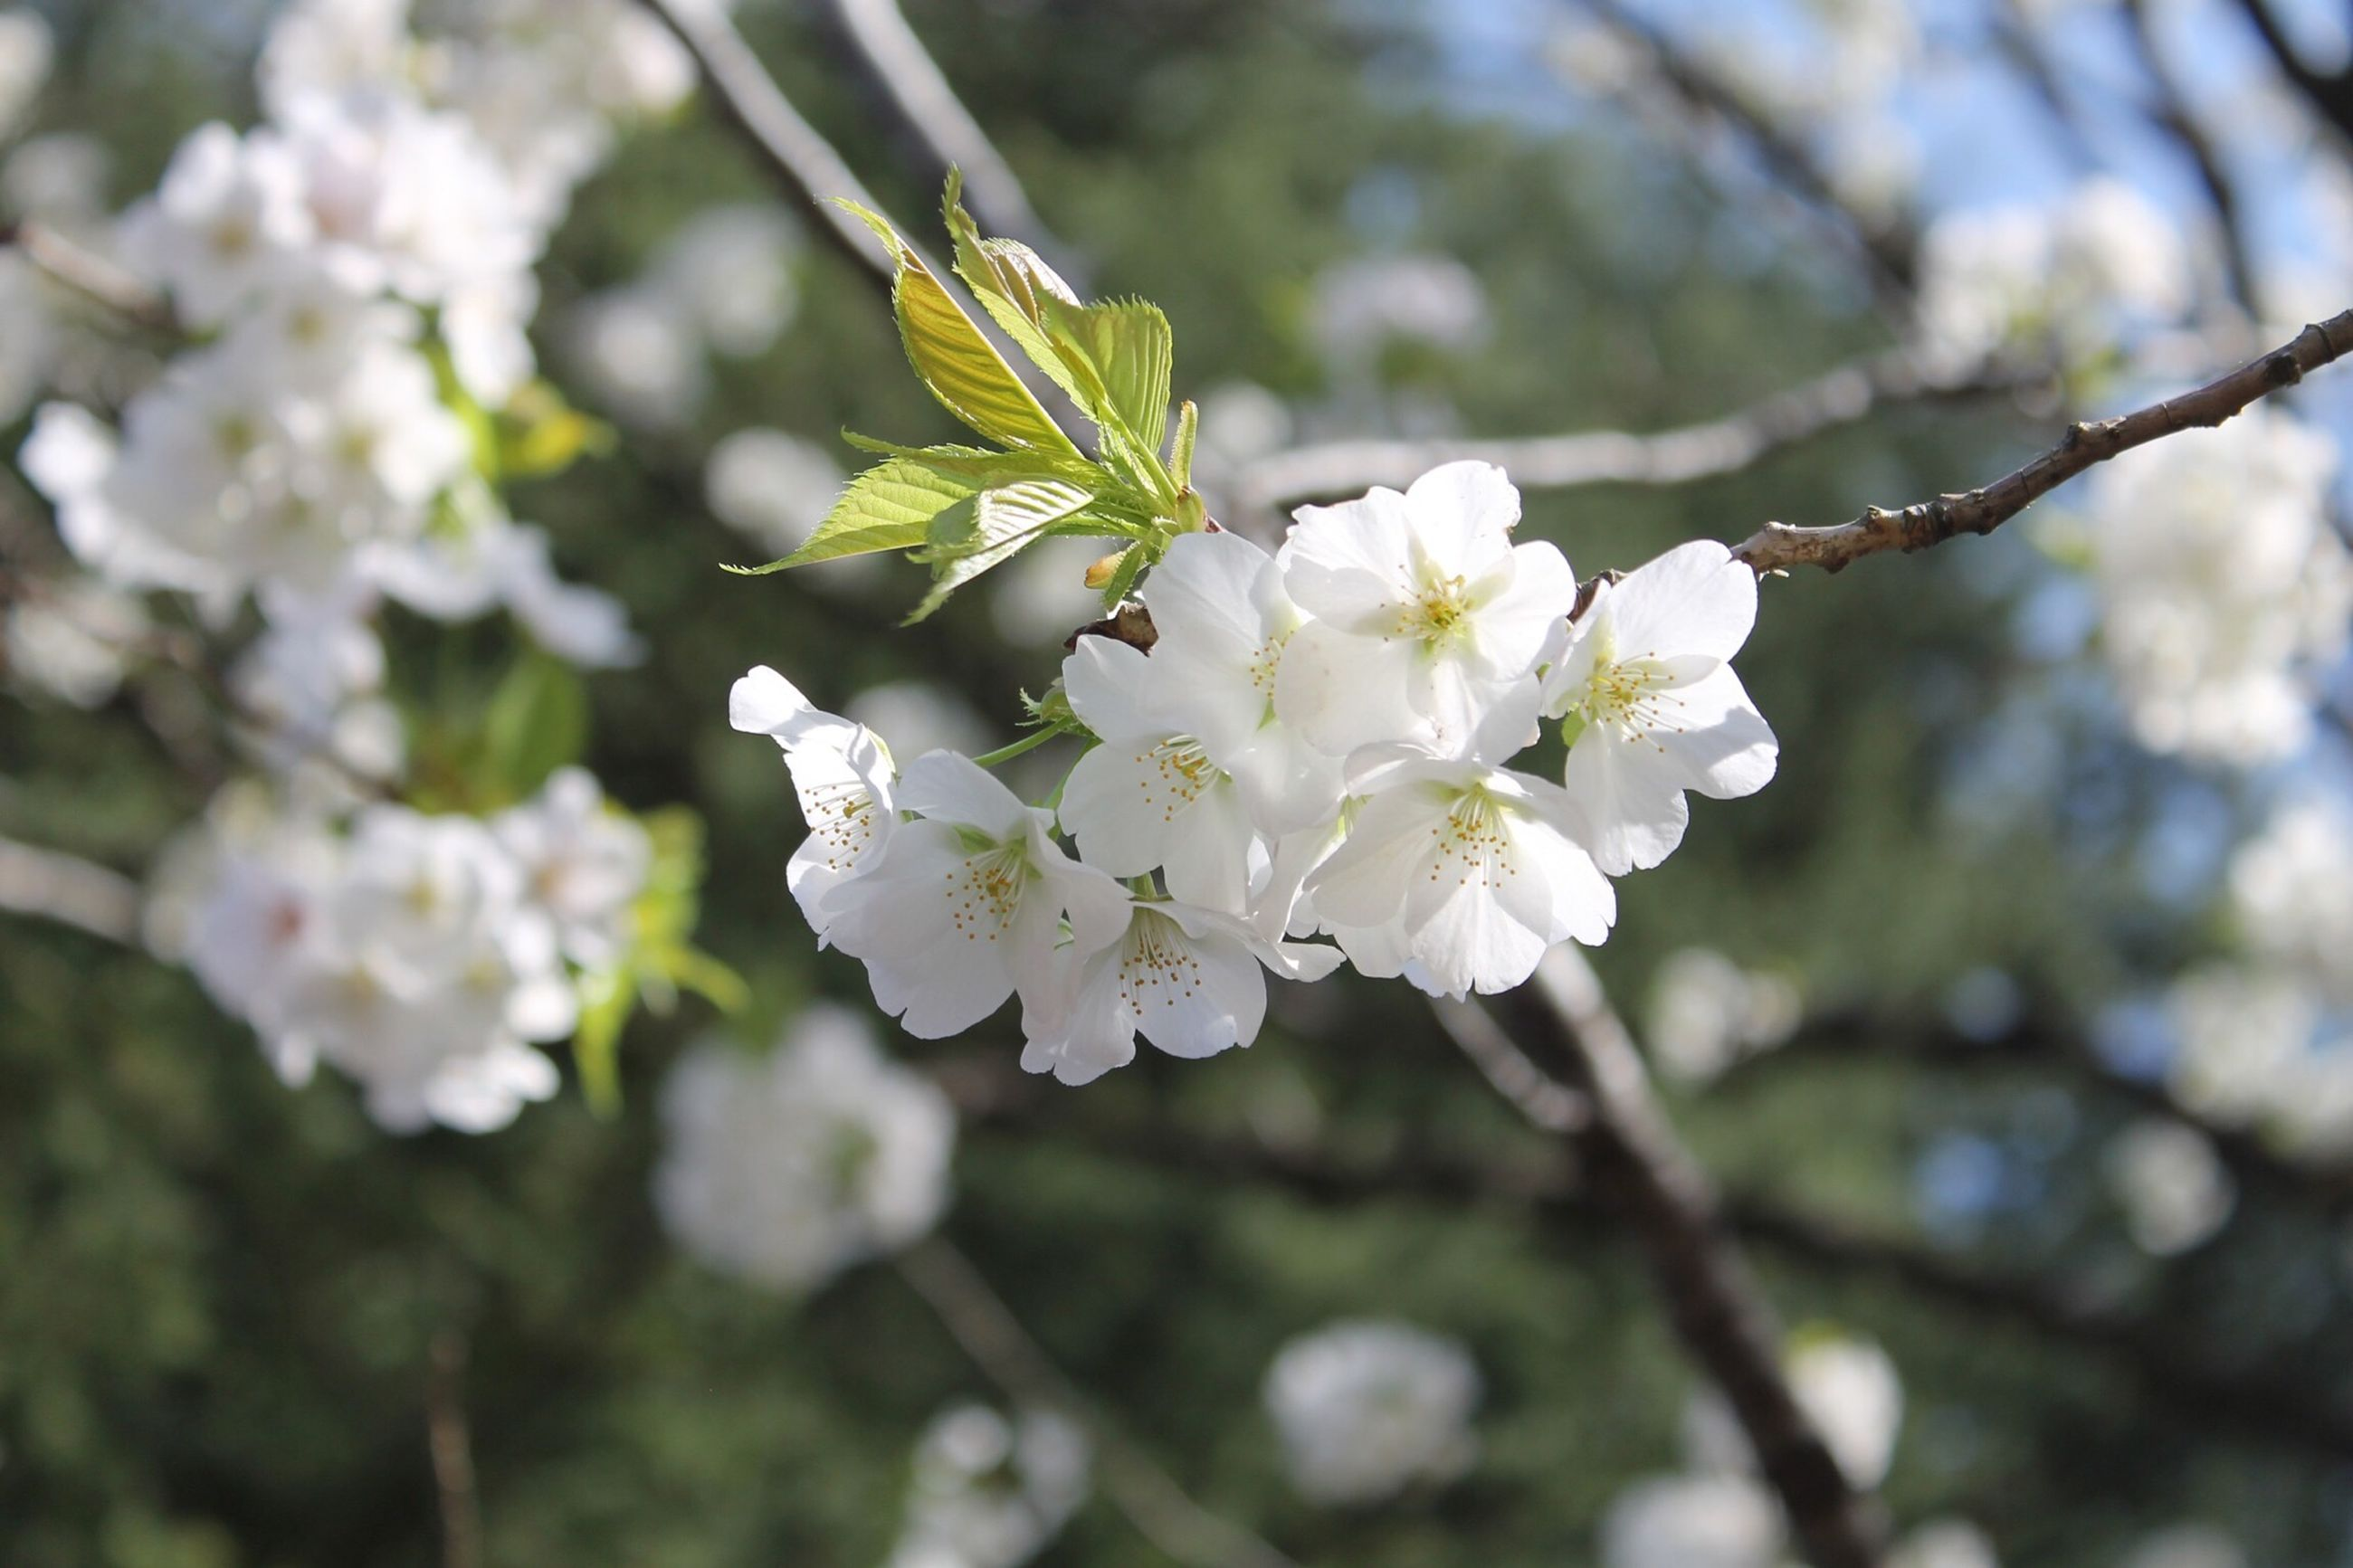 flower, freshness, branch, growth, tree, white color, fragility, cherry blossom, cherry tree, beauty in nature, blossom, focus on foreground, nature, apple blossom, petal, fruit tree, apple tree, close-up, blooming, in bloom